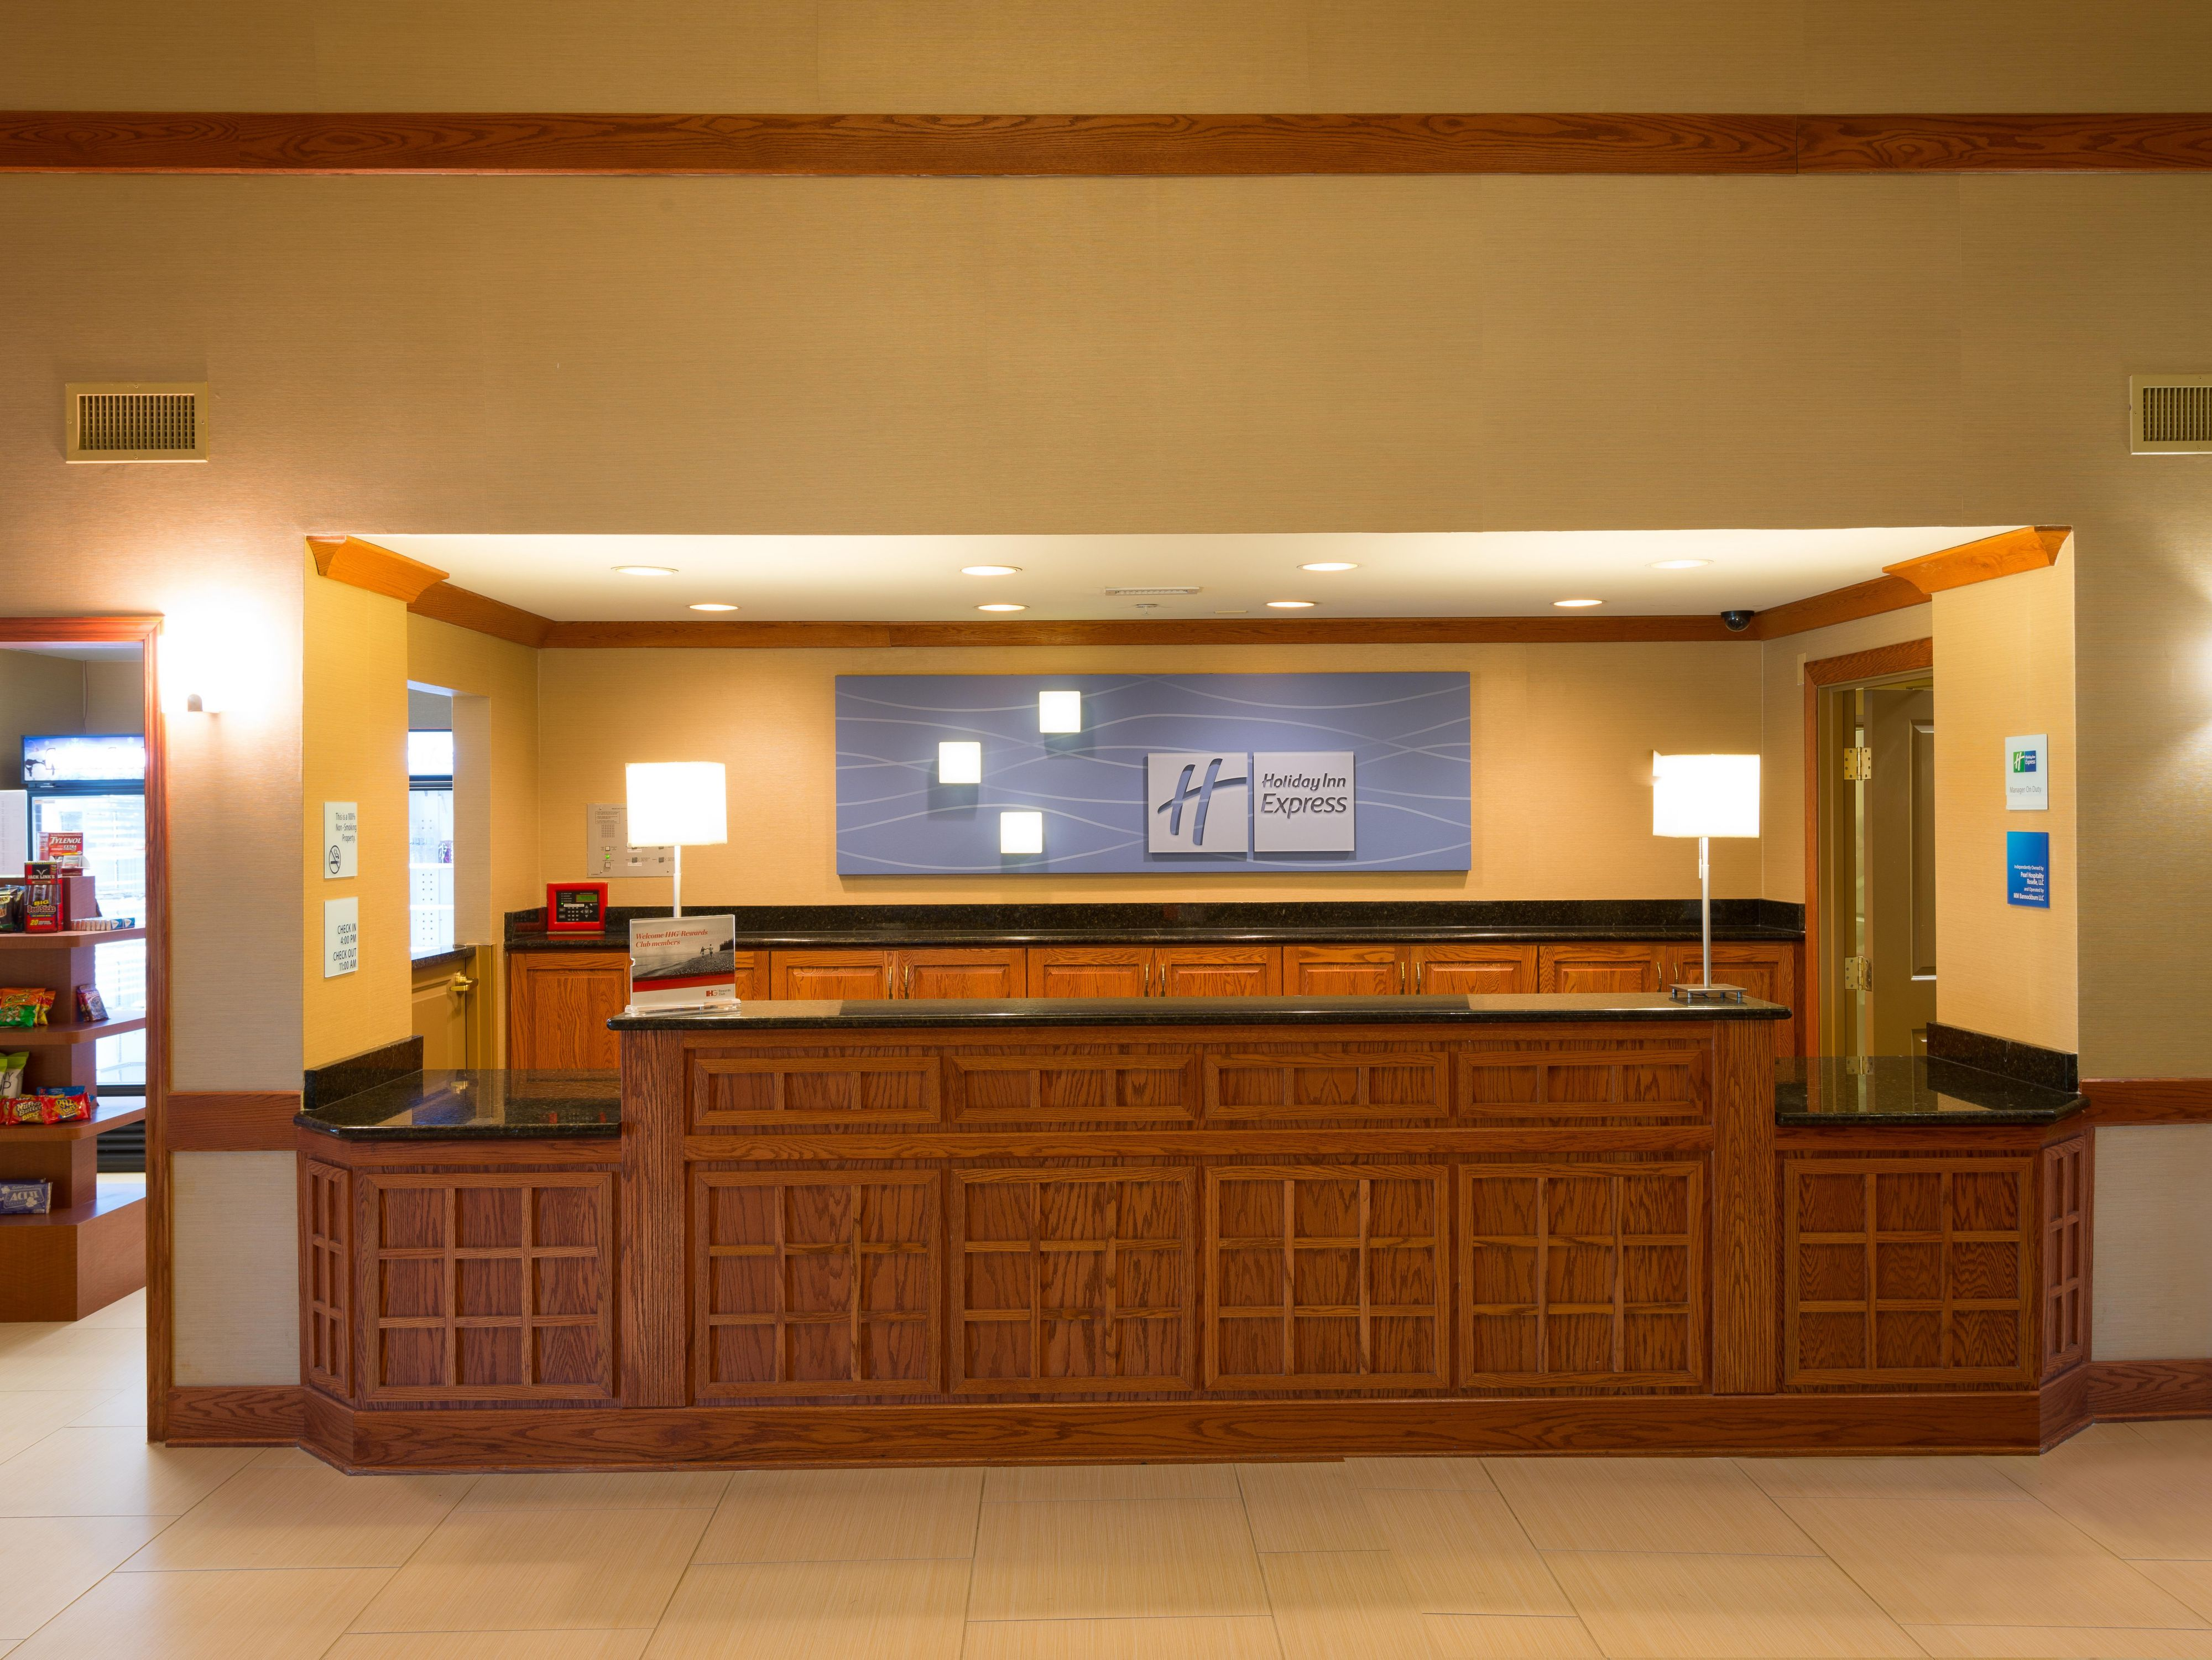 Newly remodeled Holiday Inn Express near Medinah Country Club